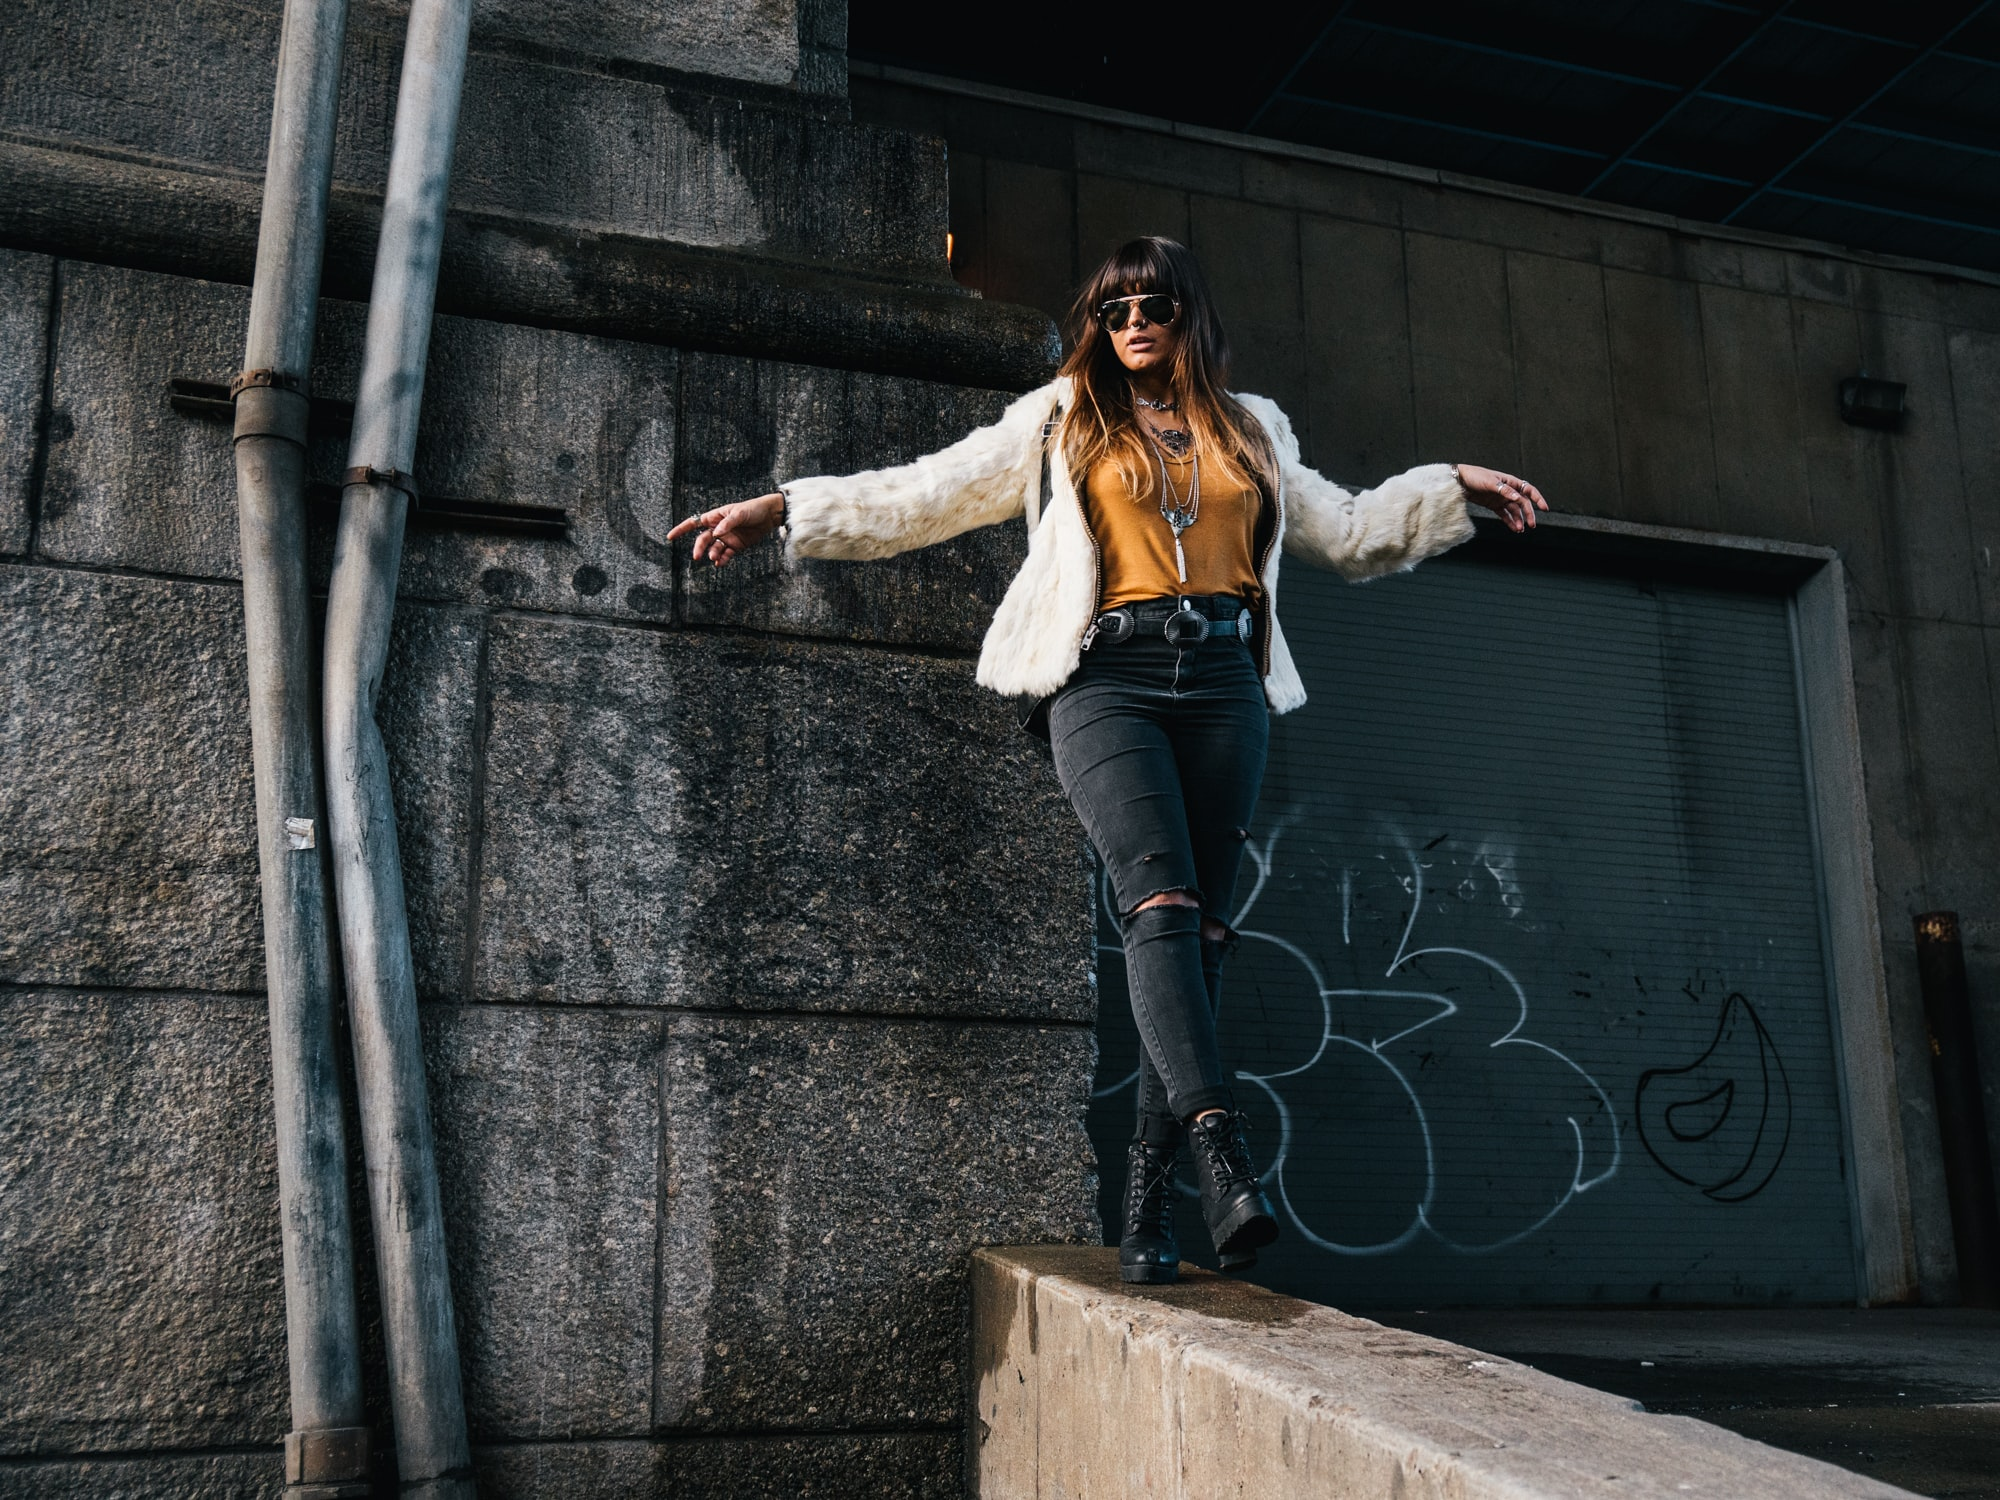 A woman wearing ripped jeans, combat boots, and a fur jacket walking on a wall in Chinatown